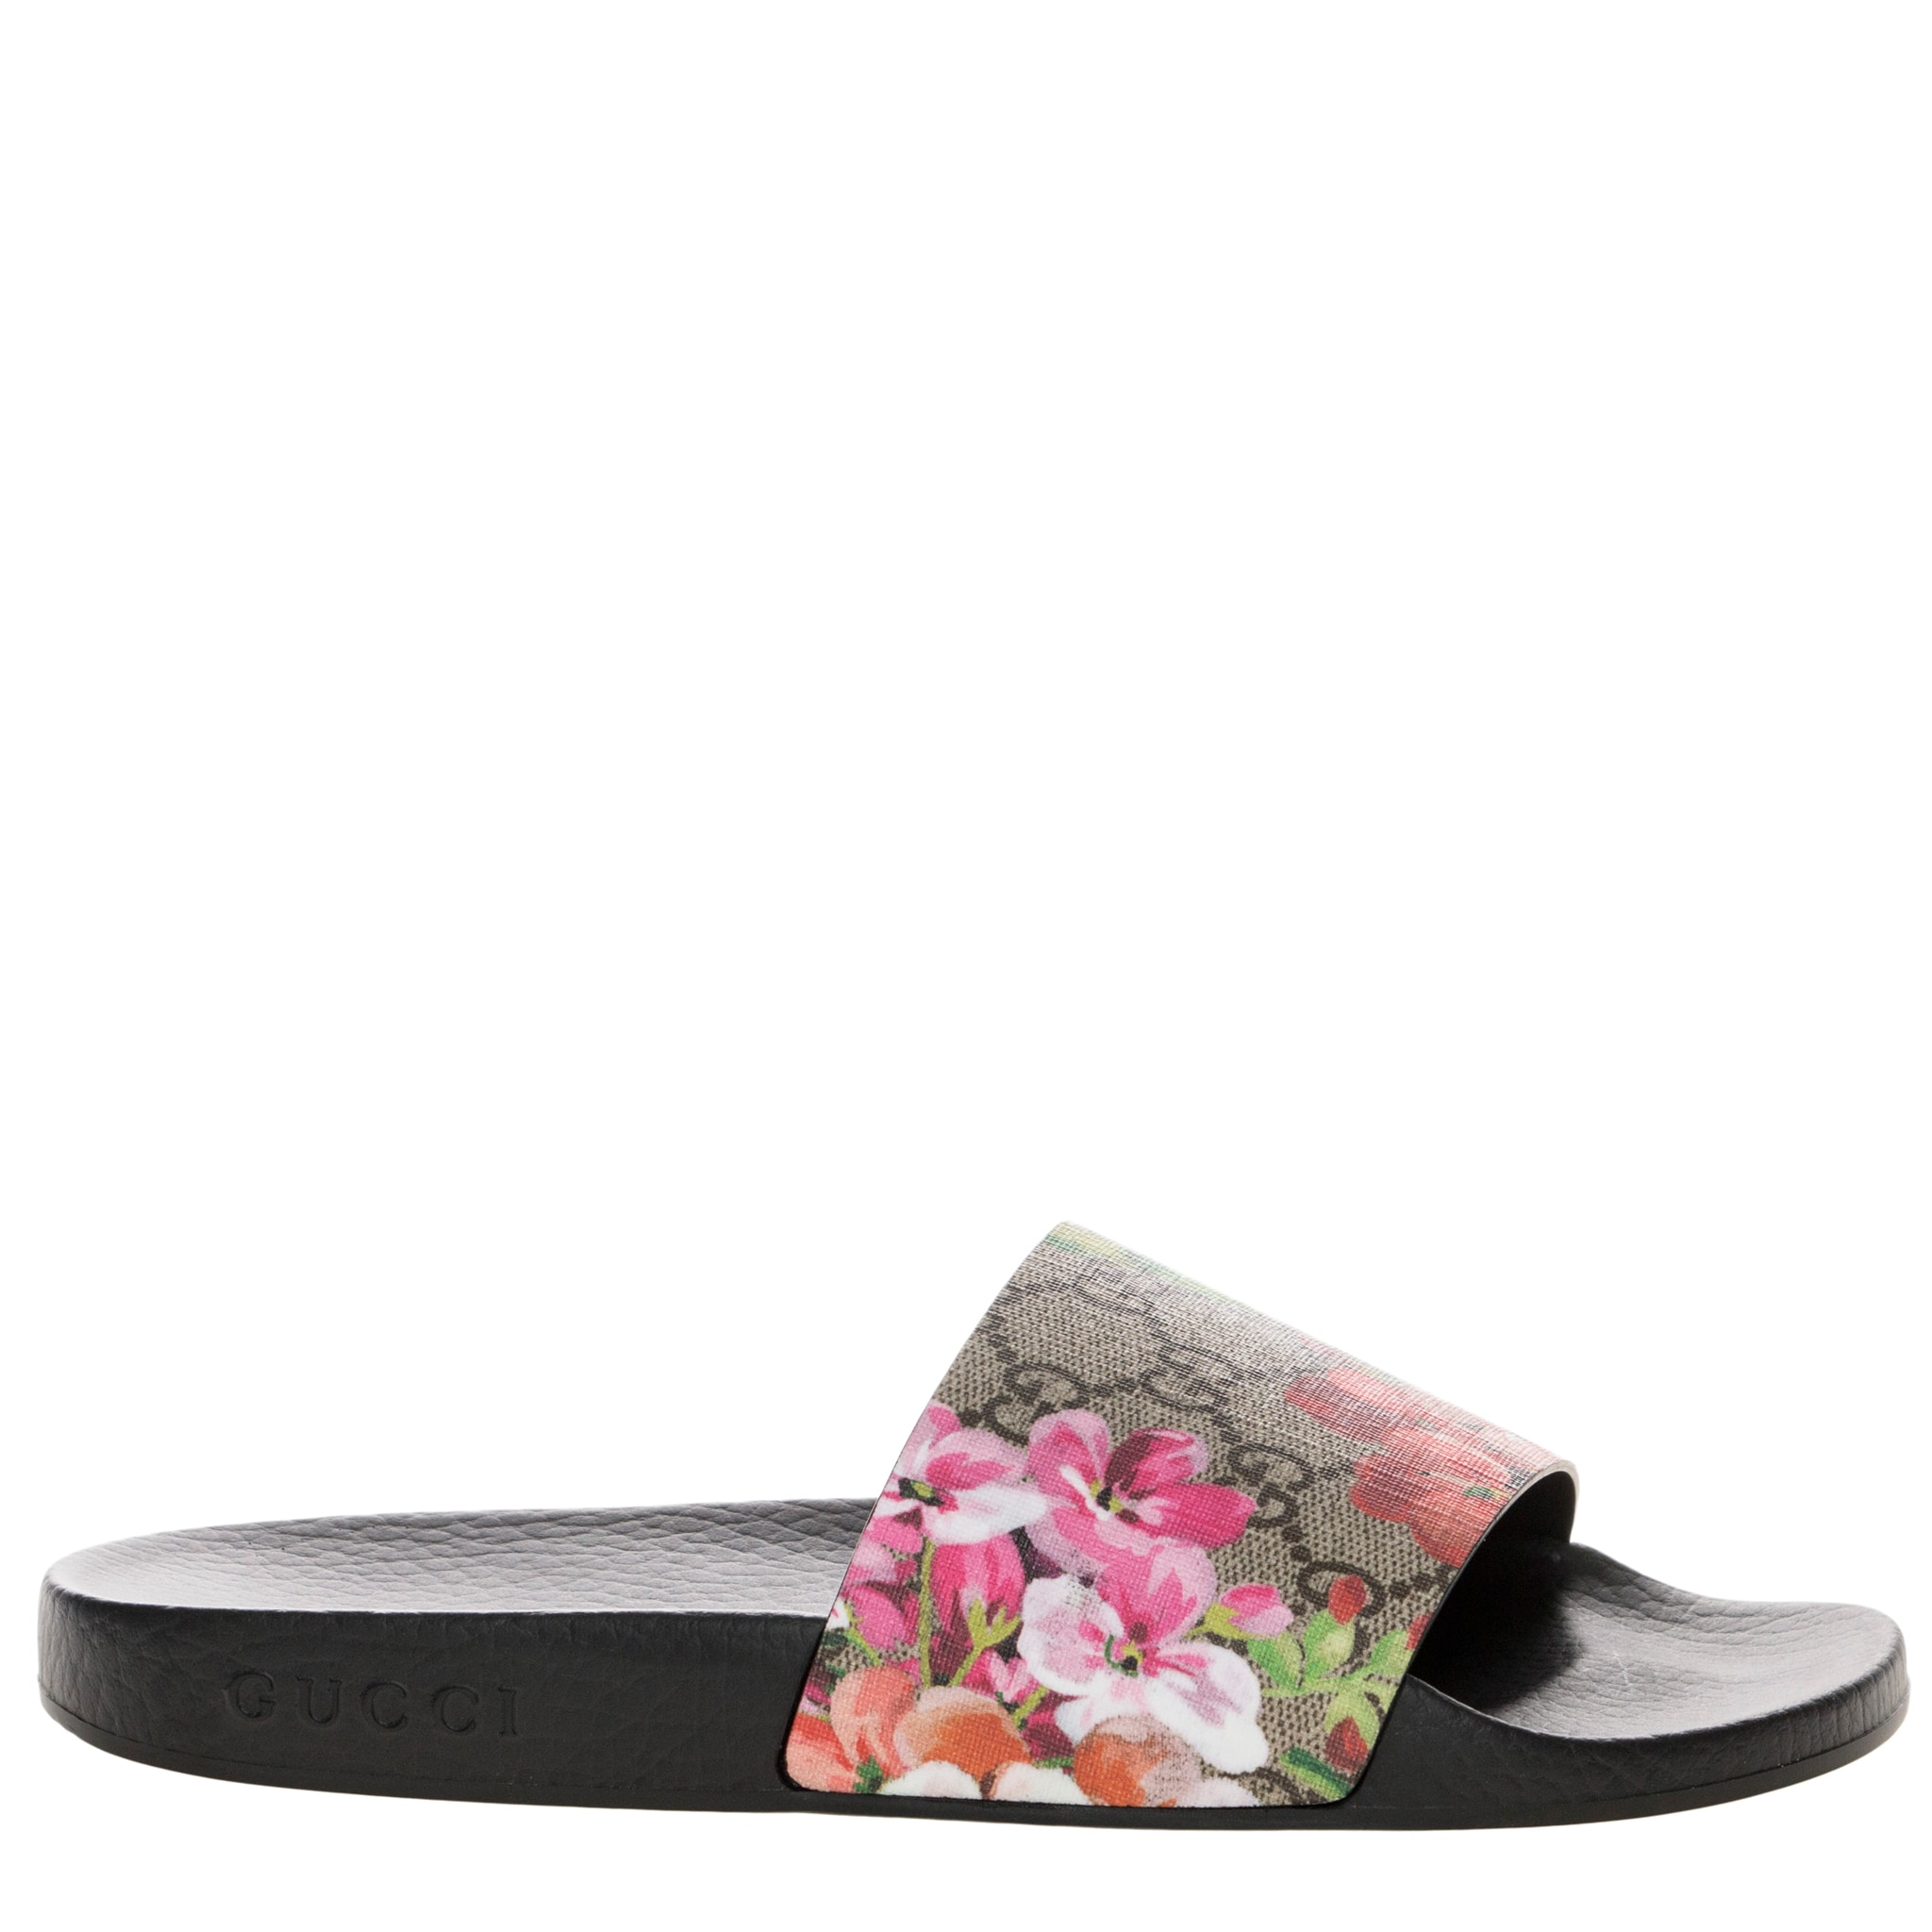 8dd5fdb9018 Shop Gucci Women s GG Blooms Supreme Rubber Sole Slide Sandals - Free  Shipping Today - Overstock - 11614566